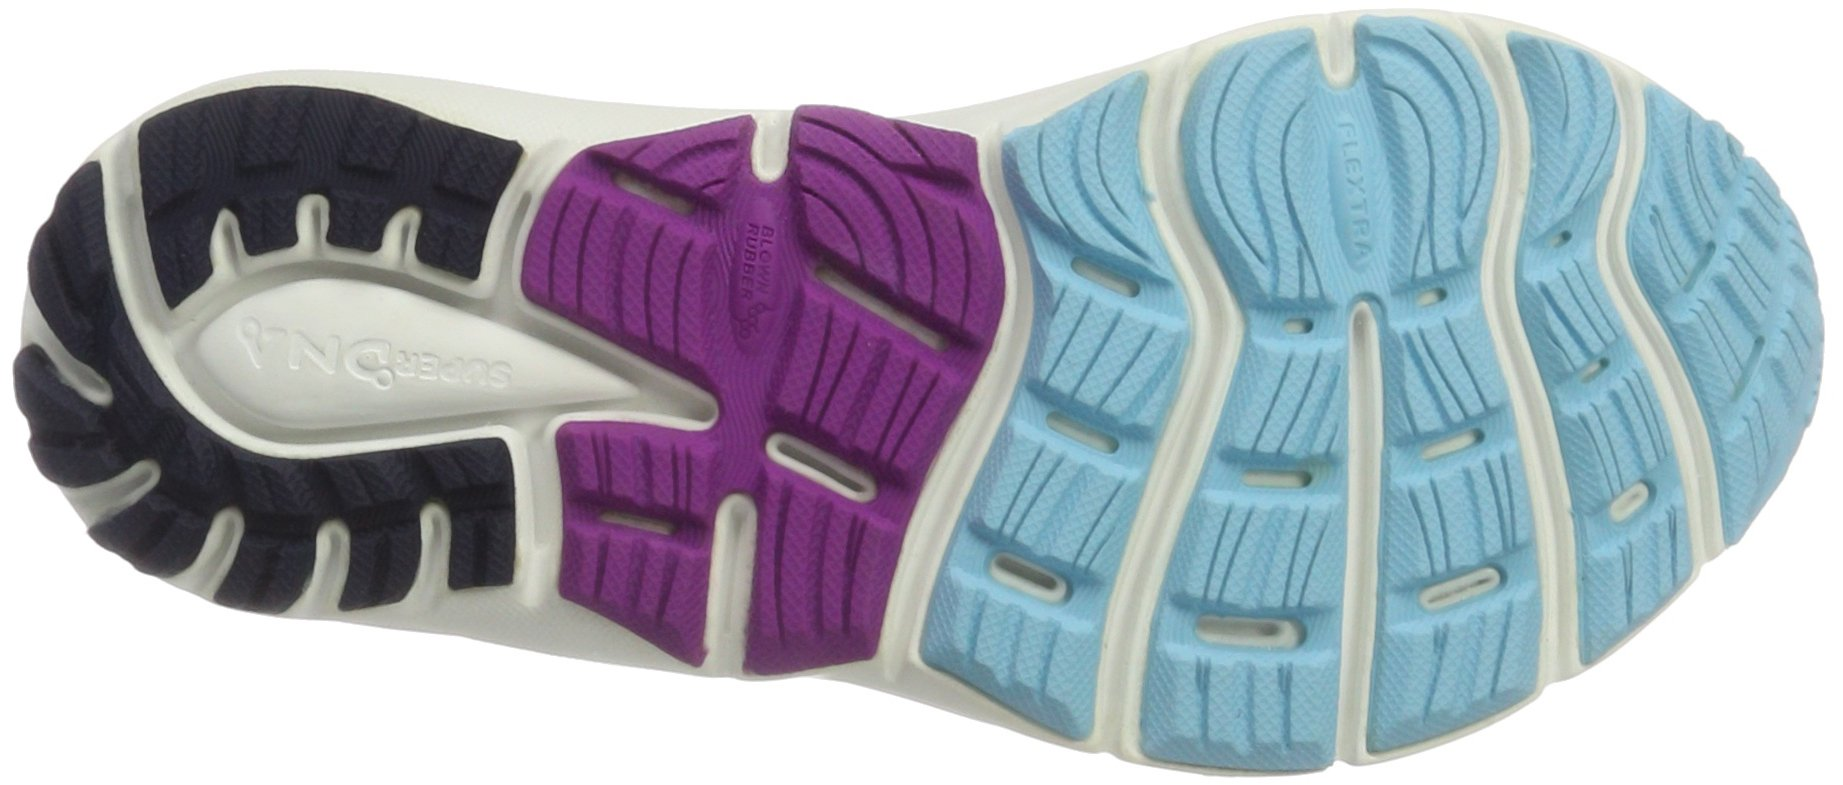 Brooks Women's Transcend 4 Bluefish/Peacoat/Purple Cactus Flower 6.5 B US by Brooks (Image #3)